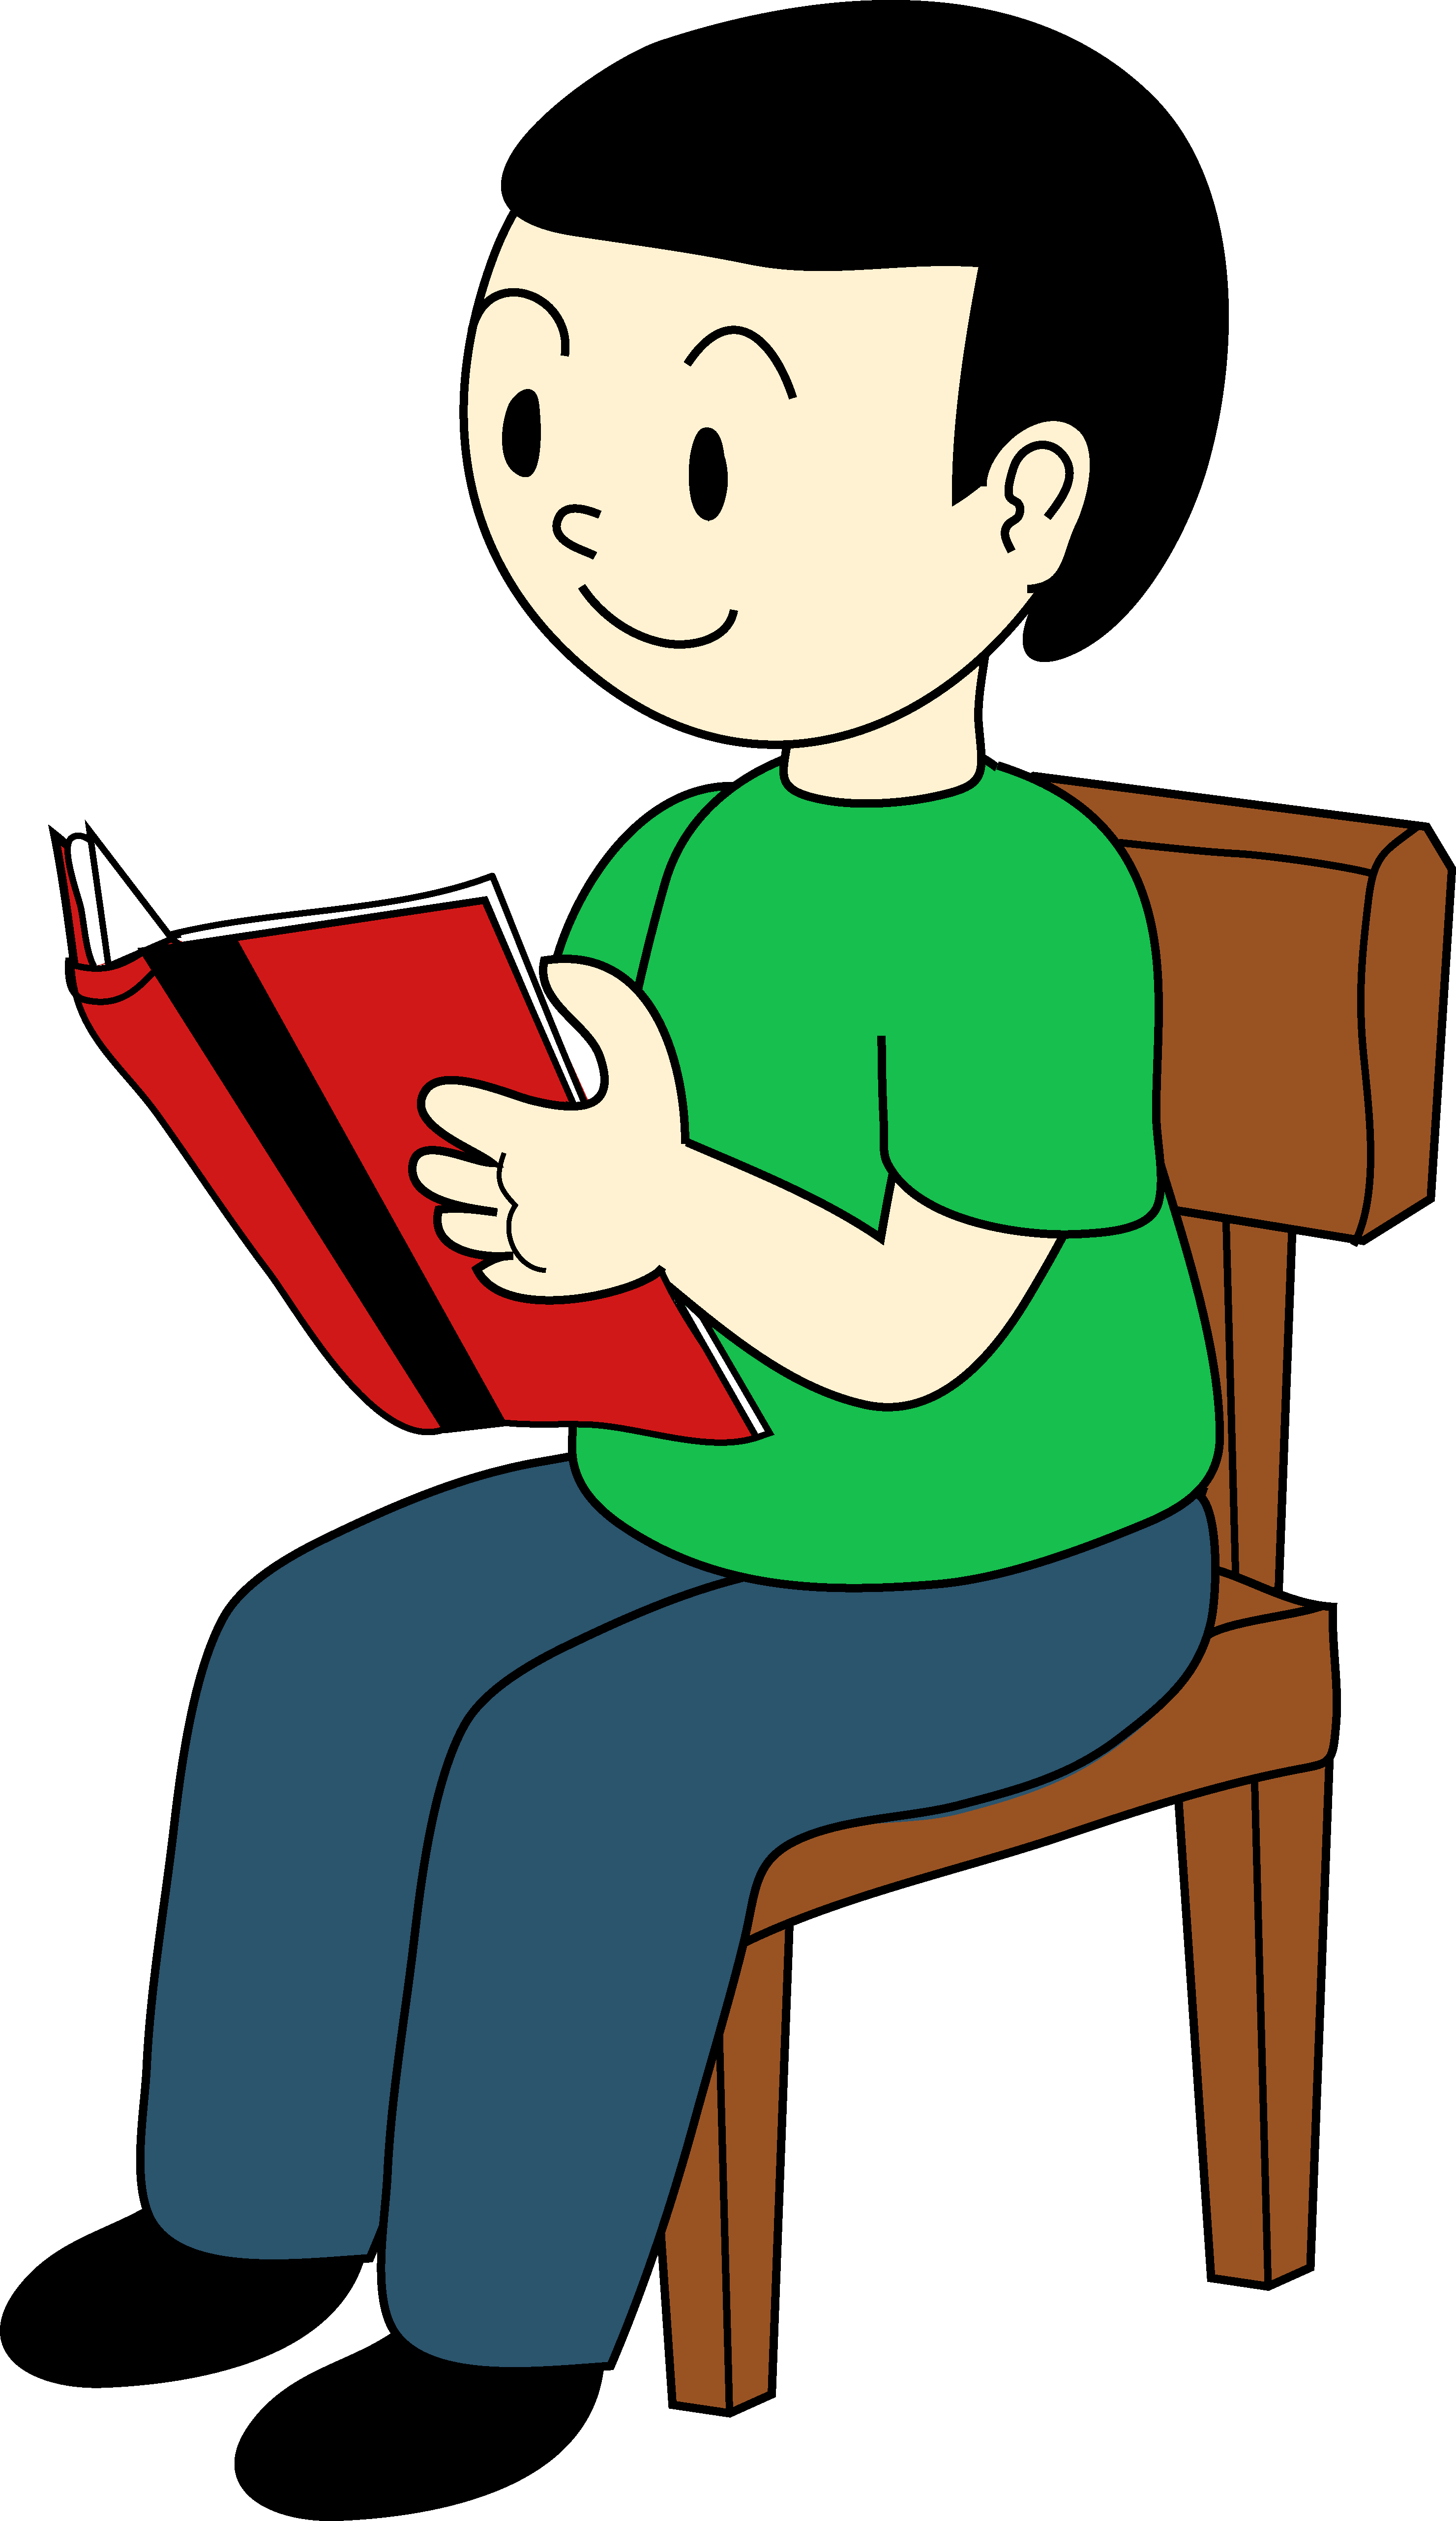 Chair clipart book. Boy sitting on a